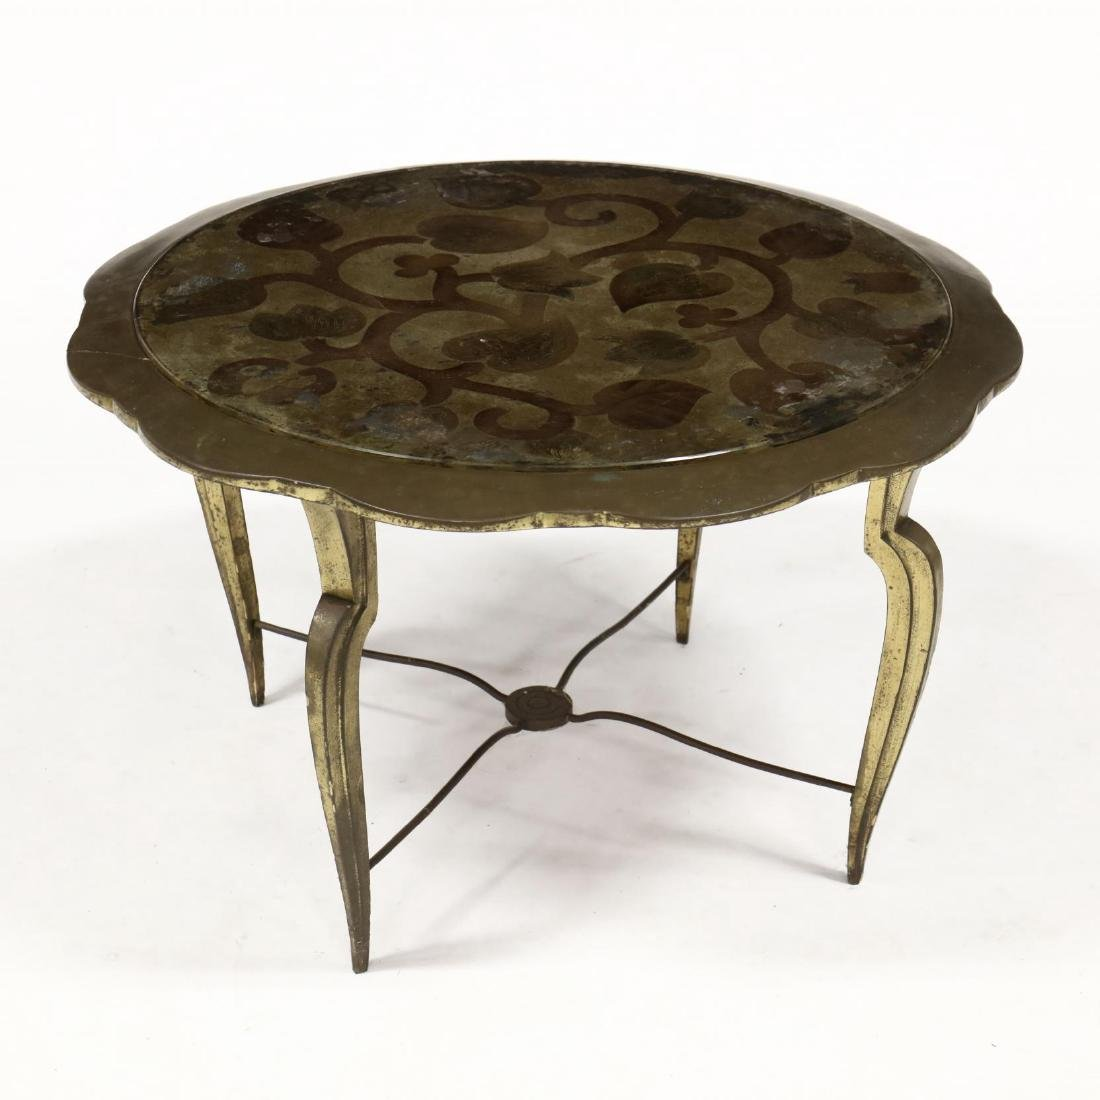 Contemporary Reverse Painted Low Circular Side Table - 2